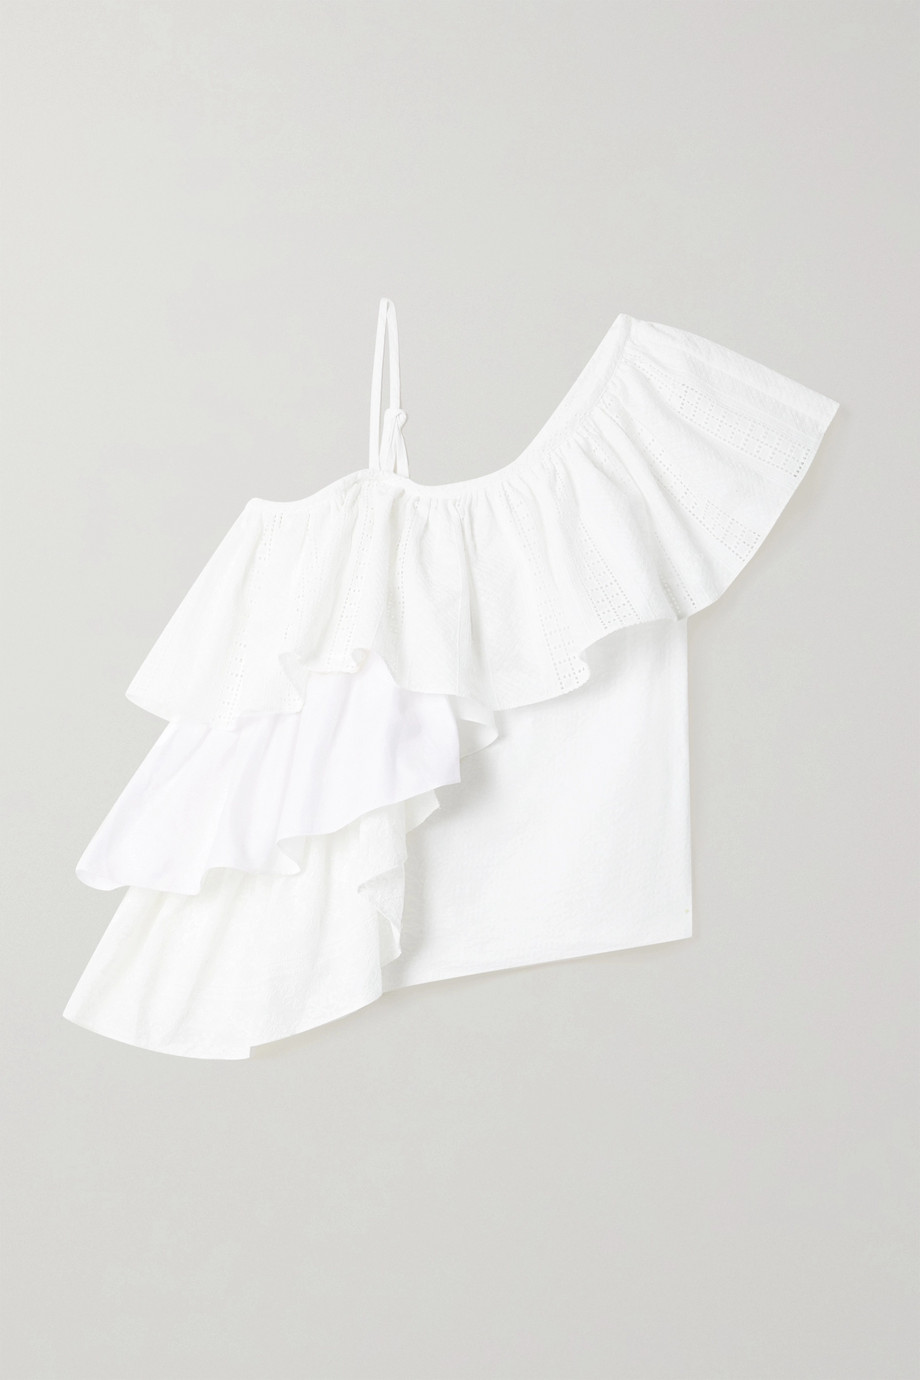 Marques' Almeida ReM'Ade by Marques' Almeida ruffled broderie anglaise cotton and seersucker top